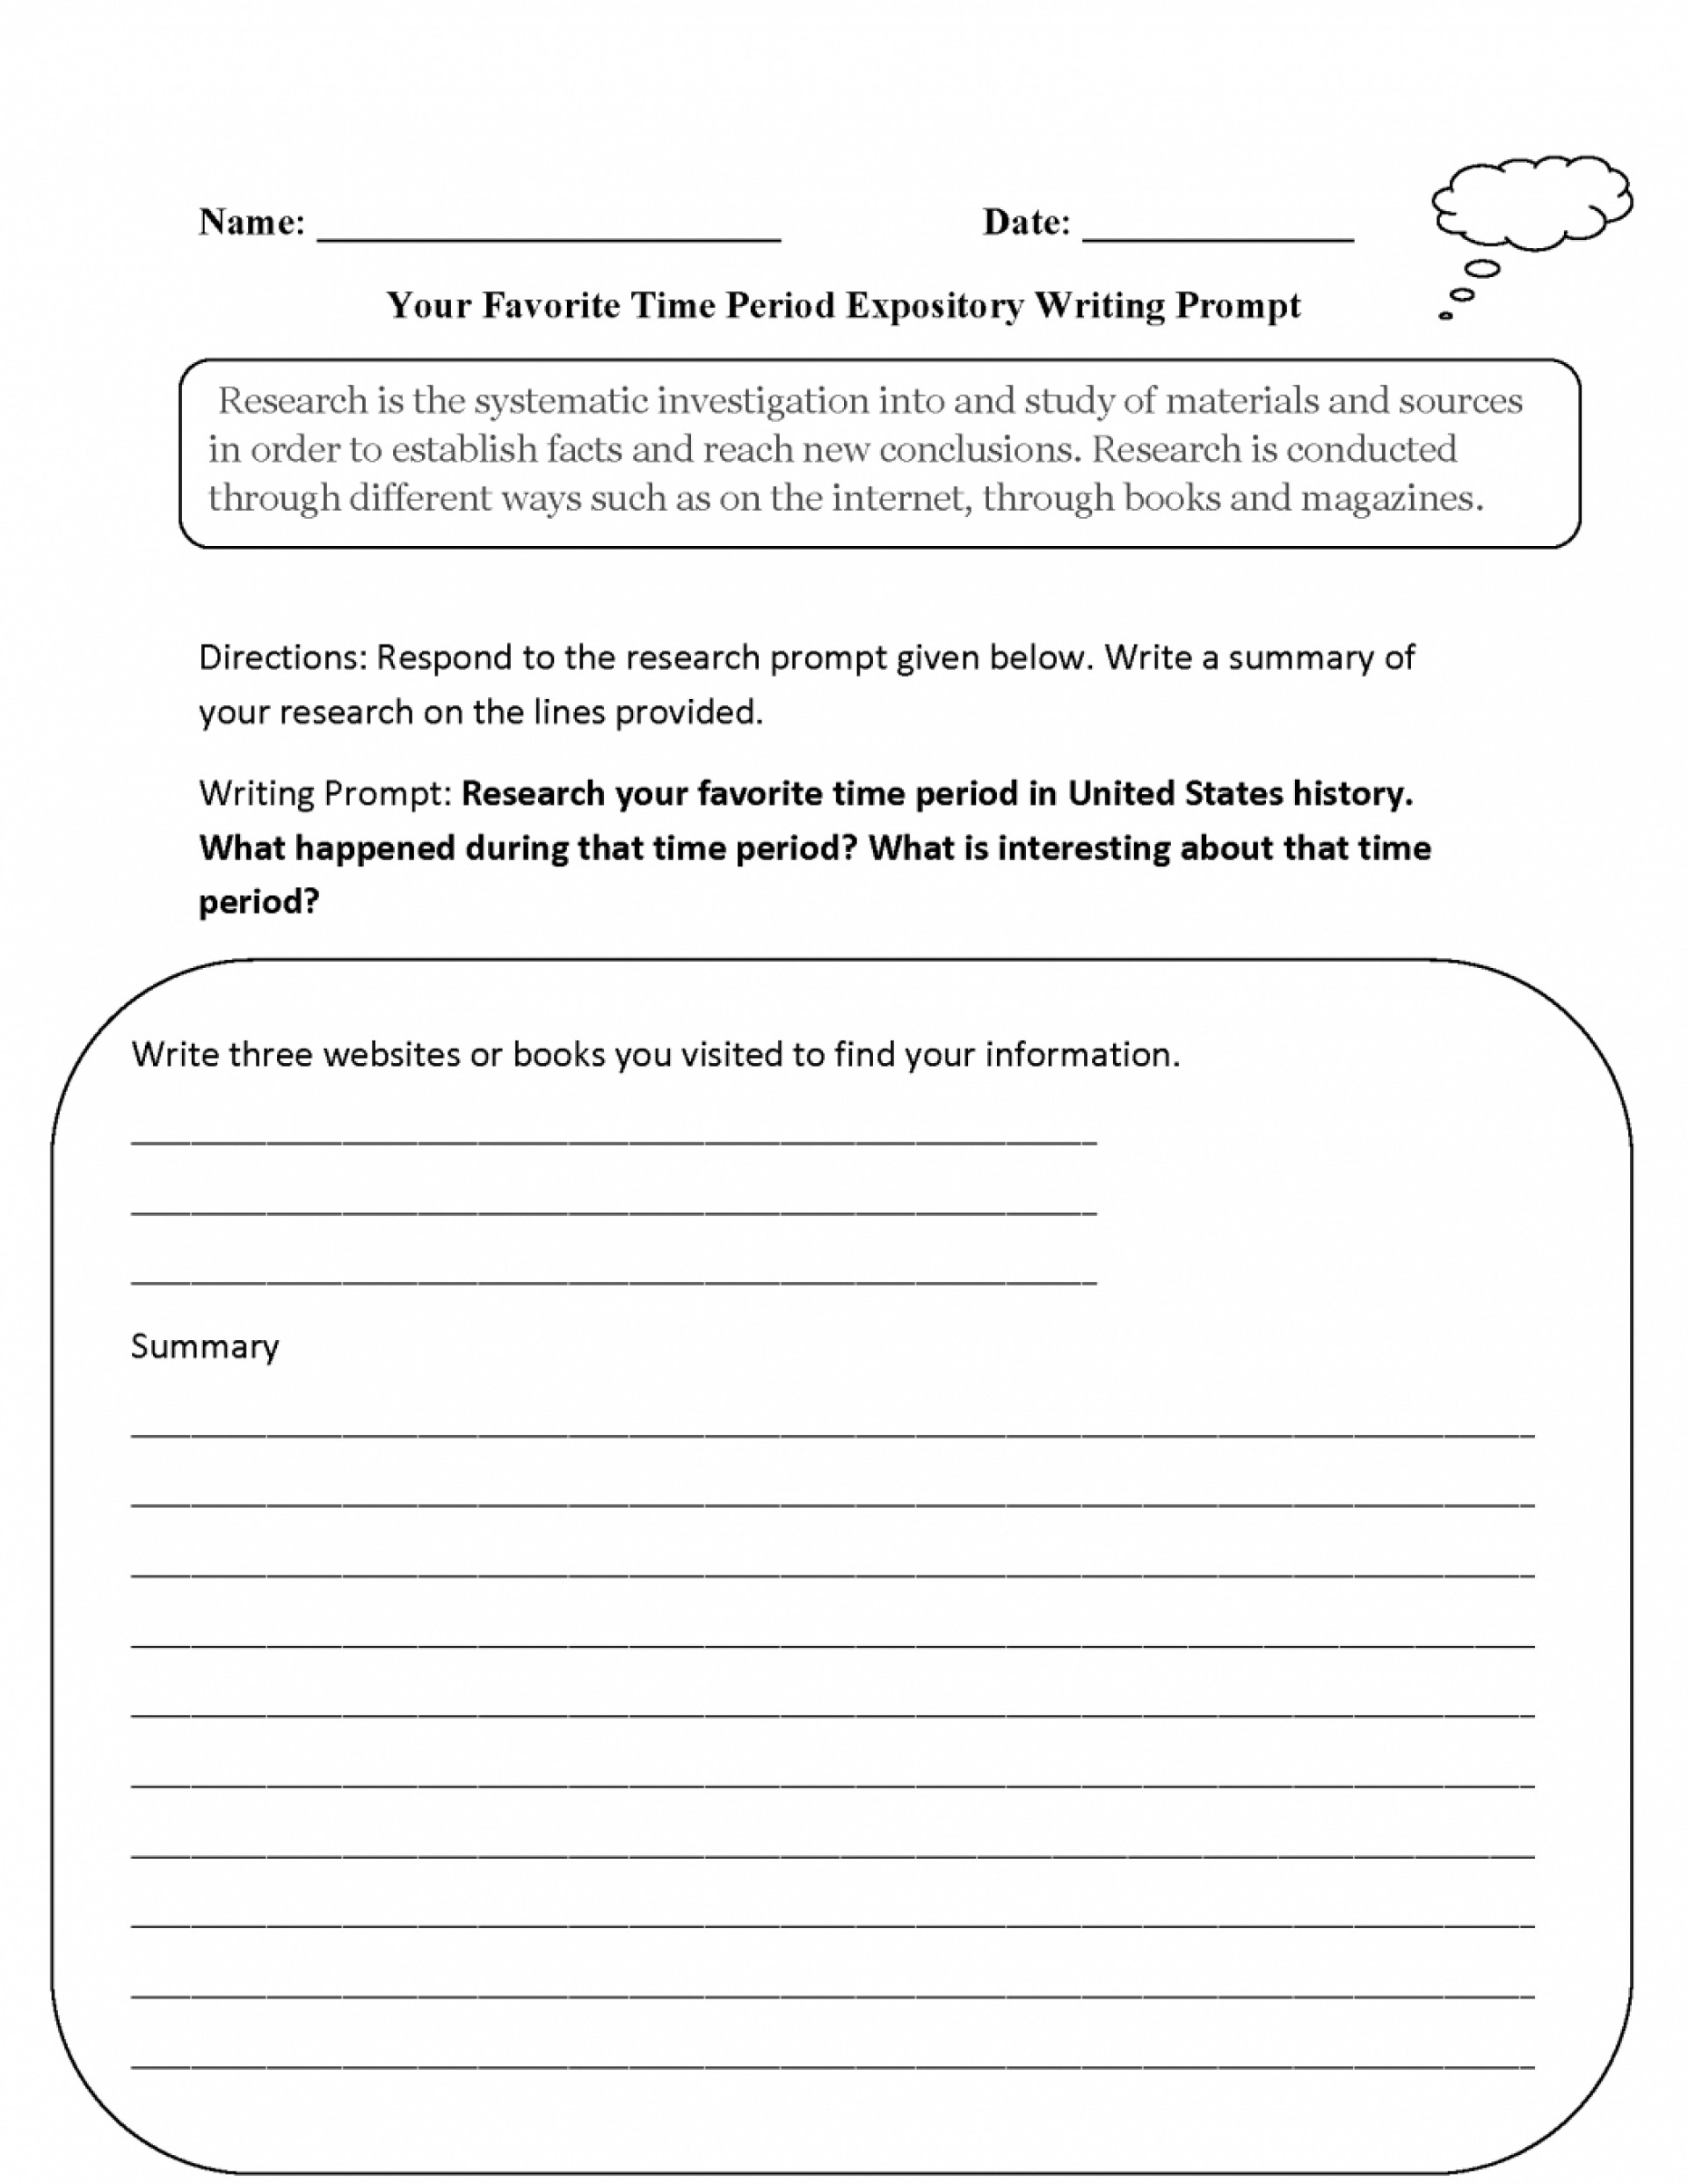 018 Essay Example Good Informative Topics Prompts Favorite Time Period Expository Writing P To Write An On The Topic Of Immigration Remarkable Prompt 4th Grade For High School College Students 1920